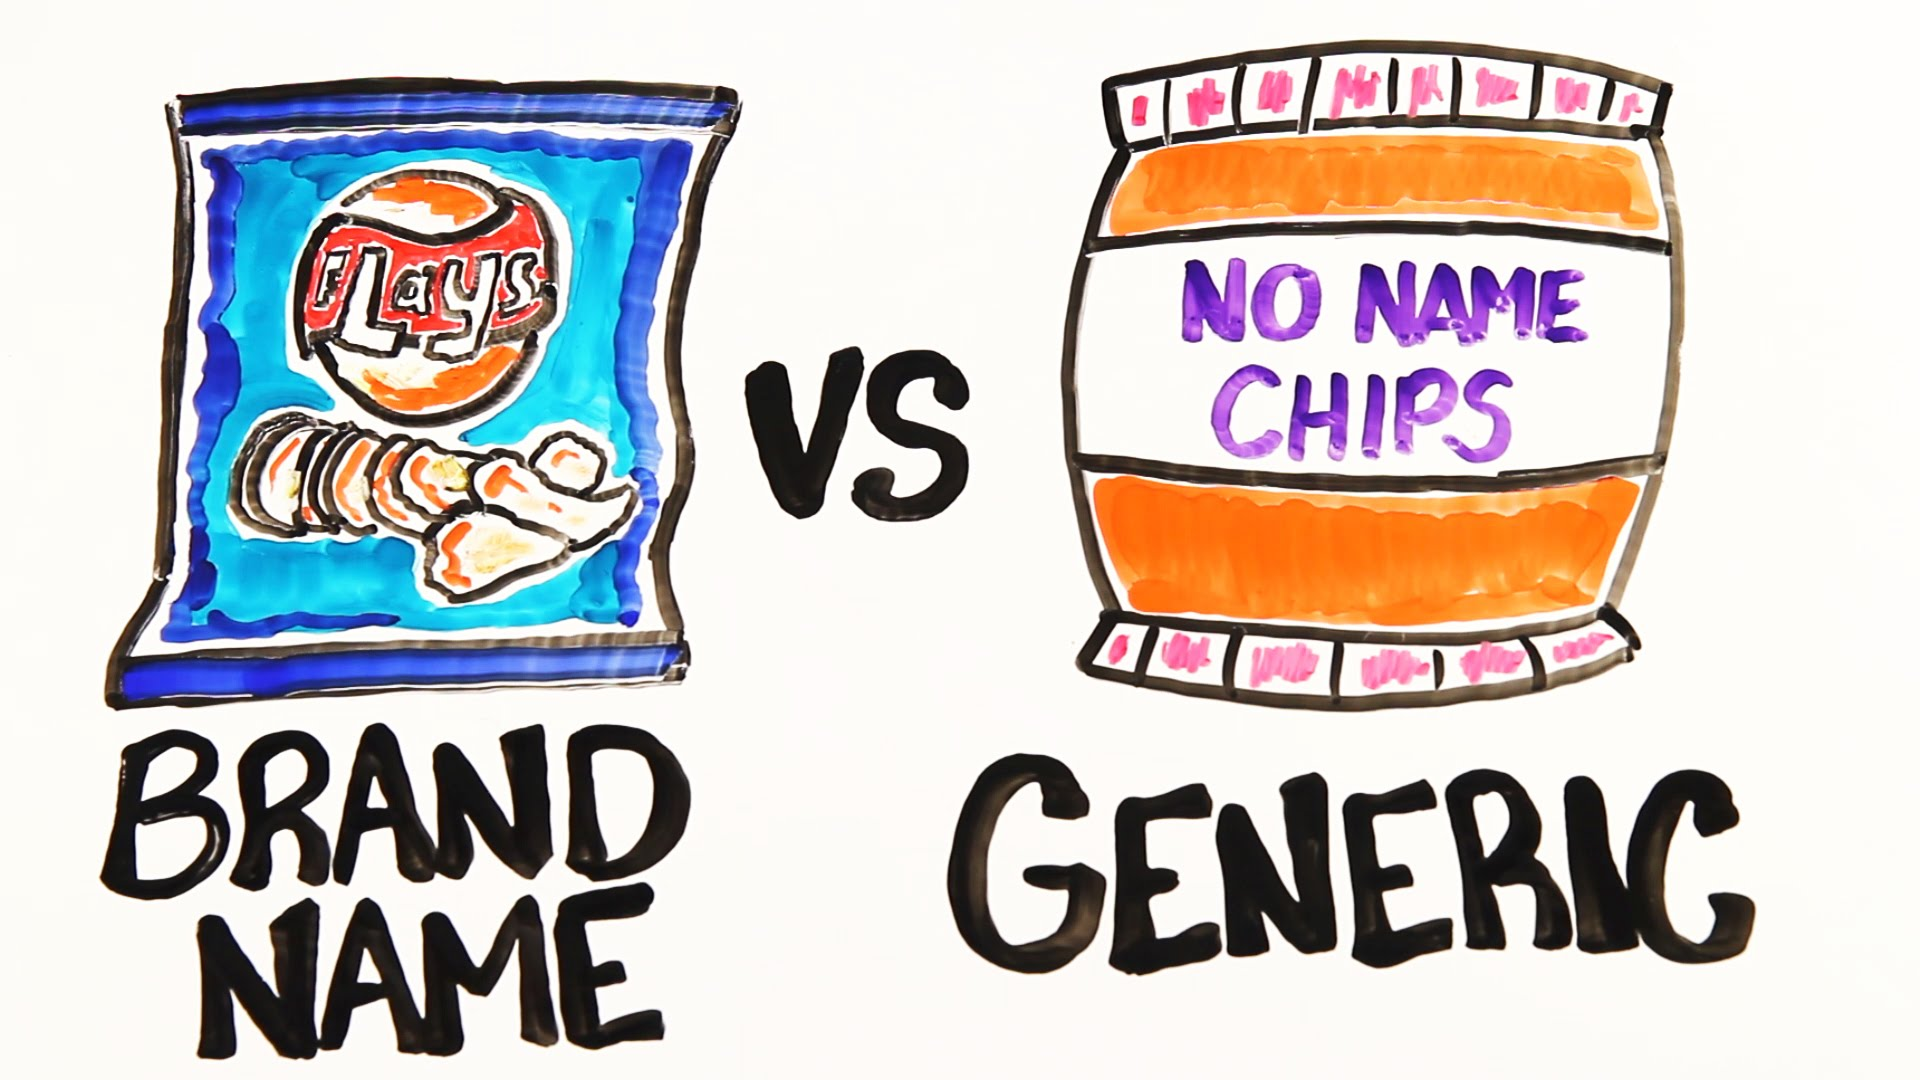 Differences between brand name and corporate image